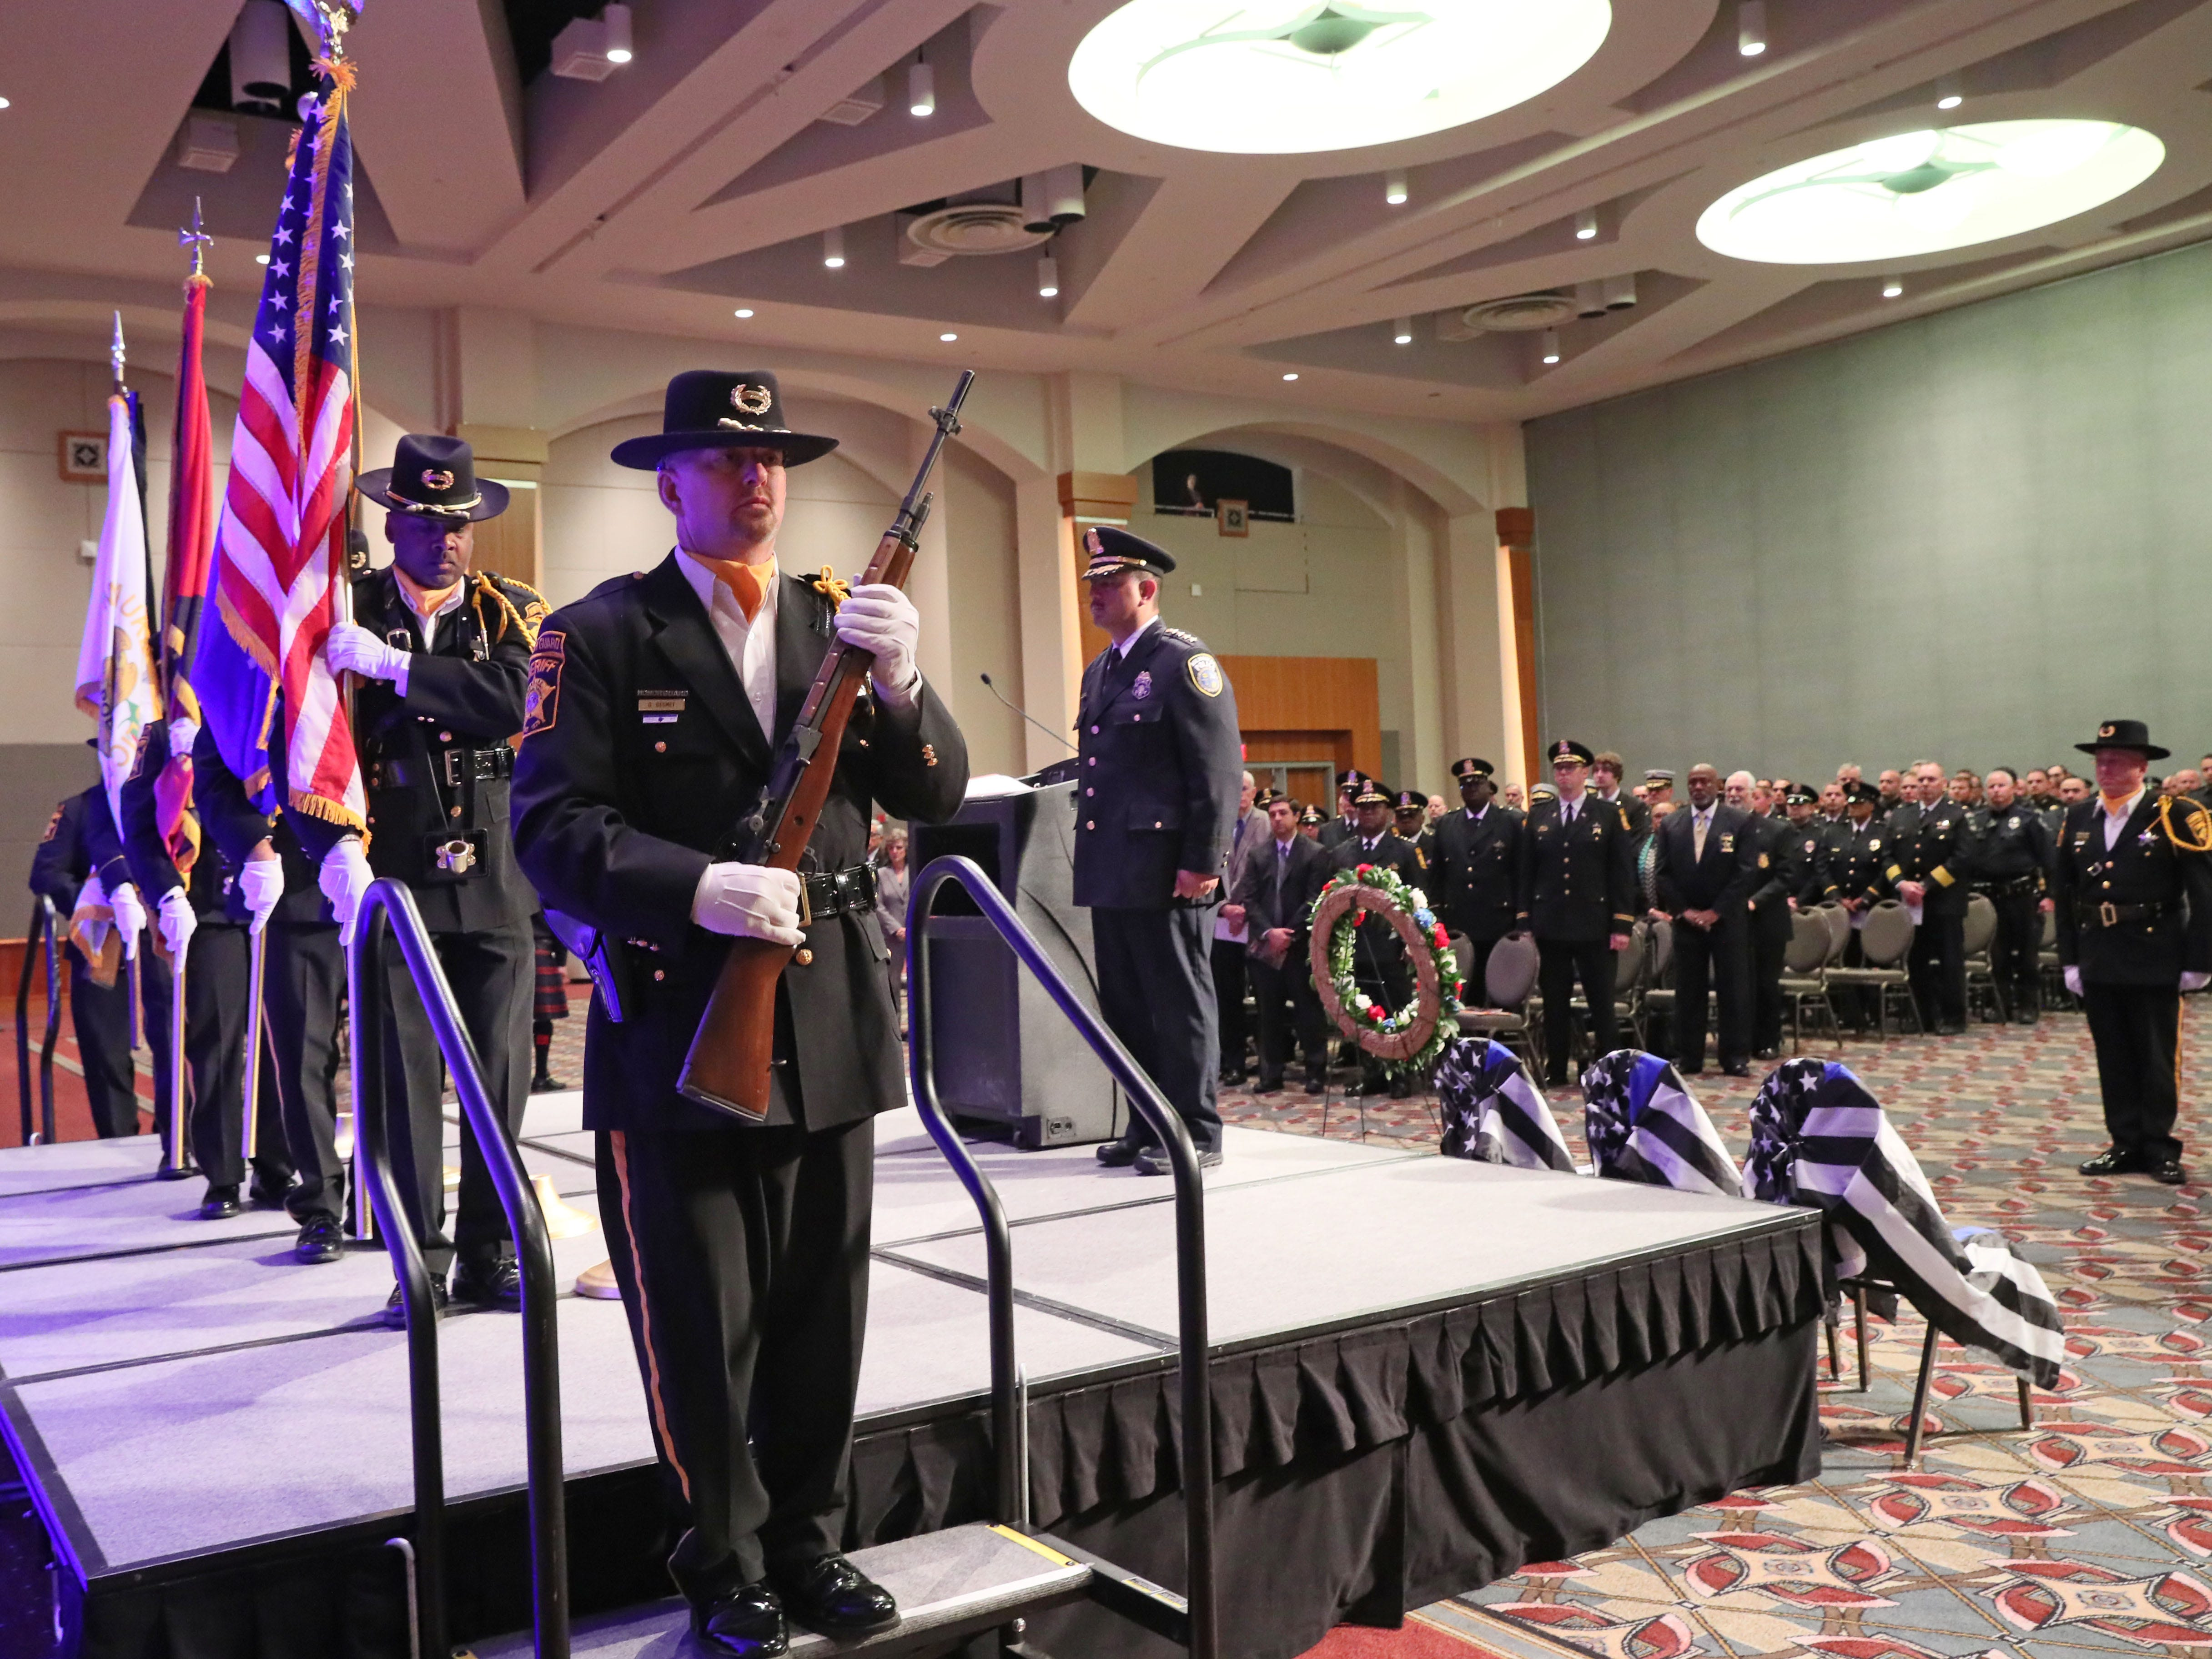 Members of the Combined Honor Guards of Milwaukee County Law Enforcement present the colors to start the service.